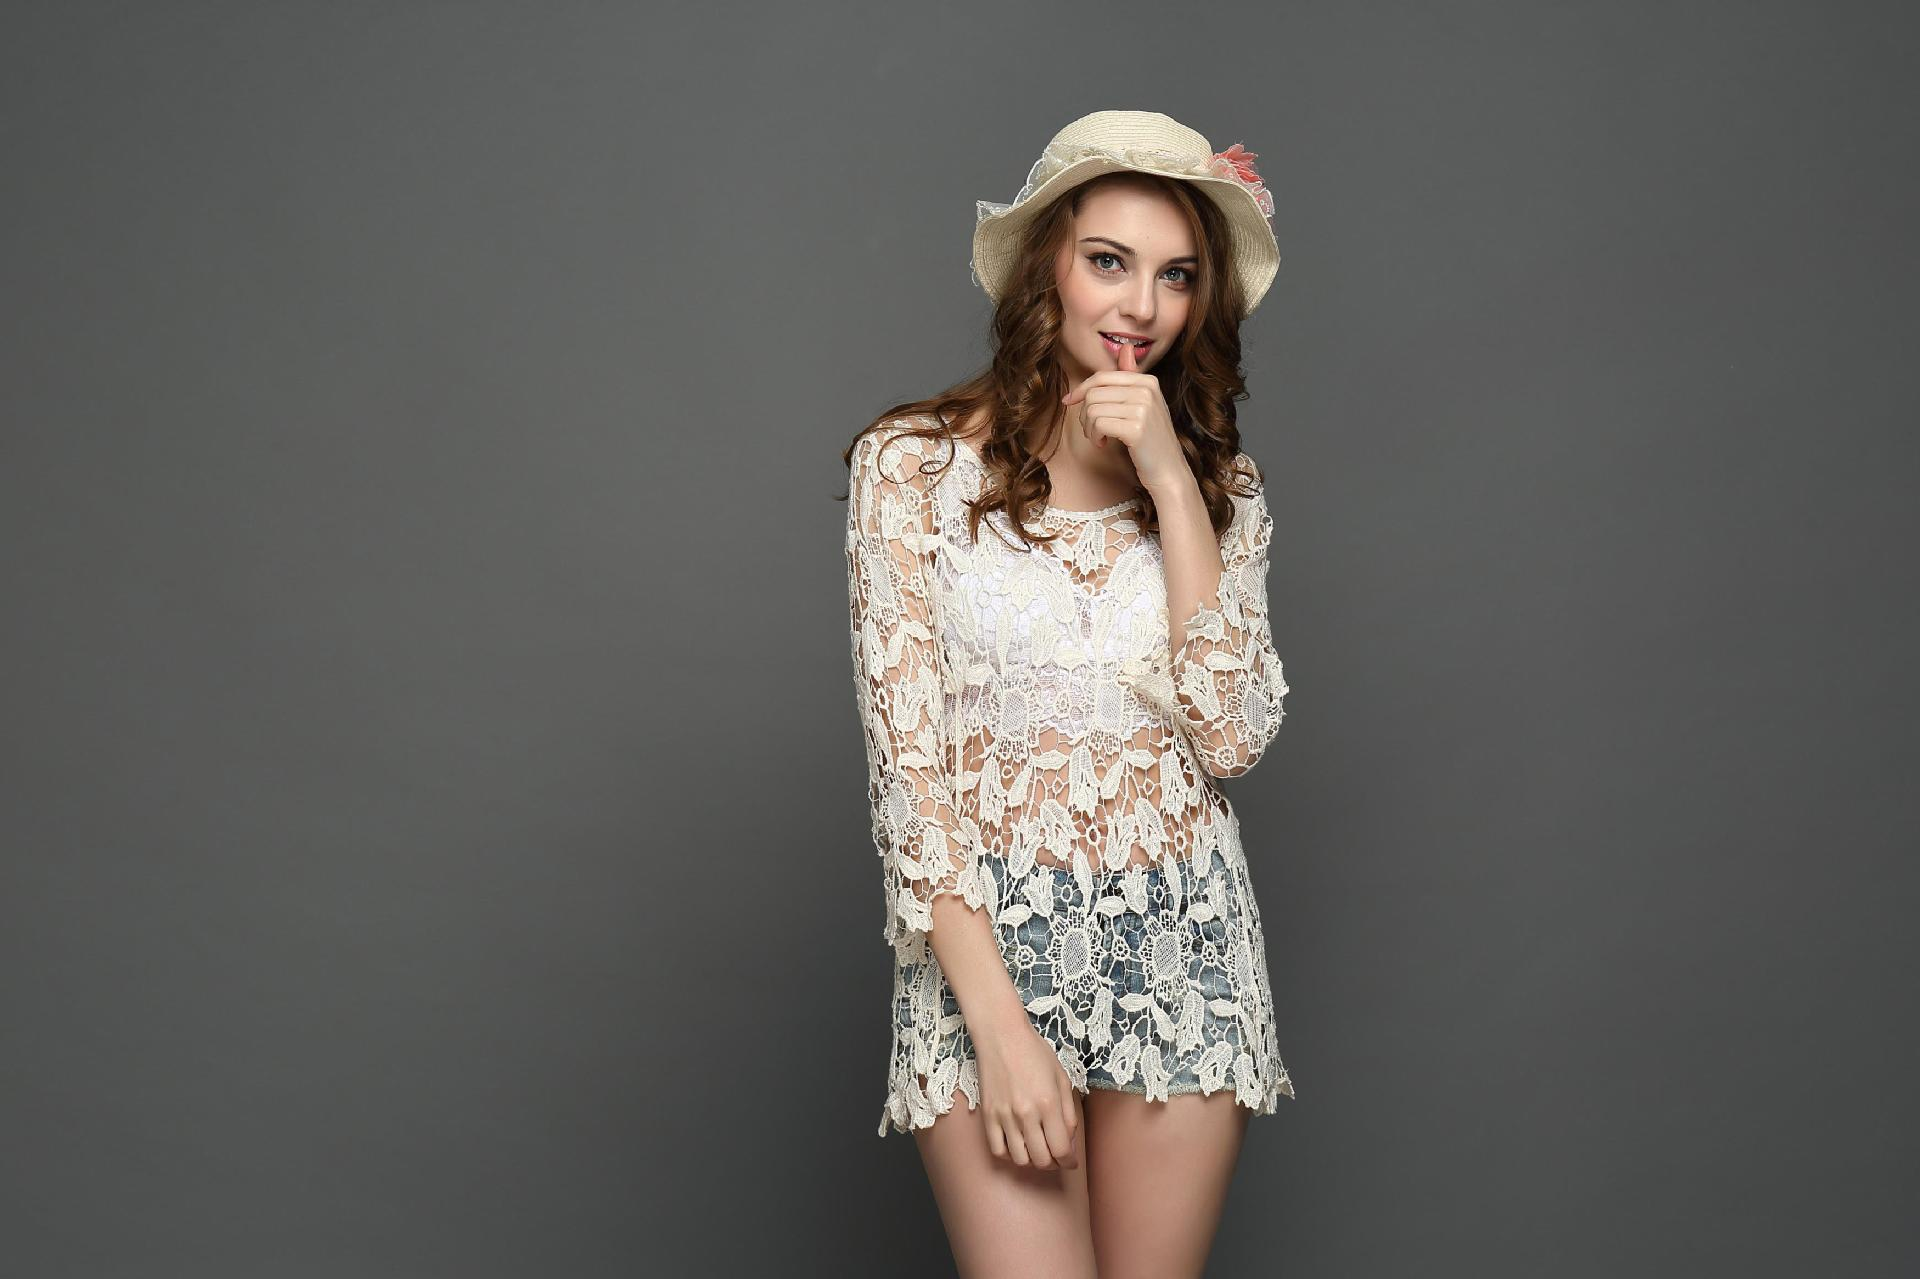 F4638 loose blouses Tuni Boho white 2017 Summer Lace Frint Top for Women